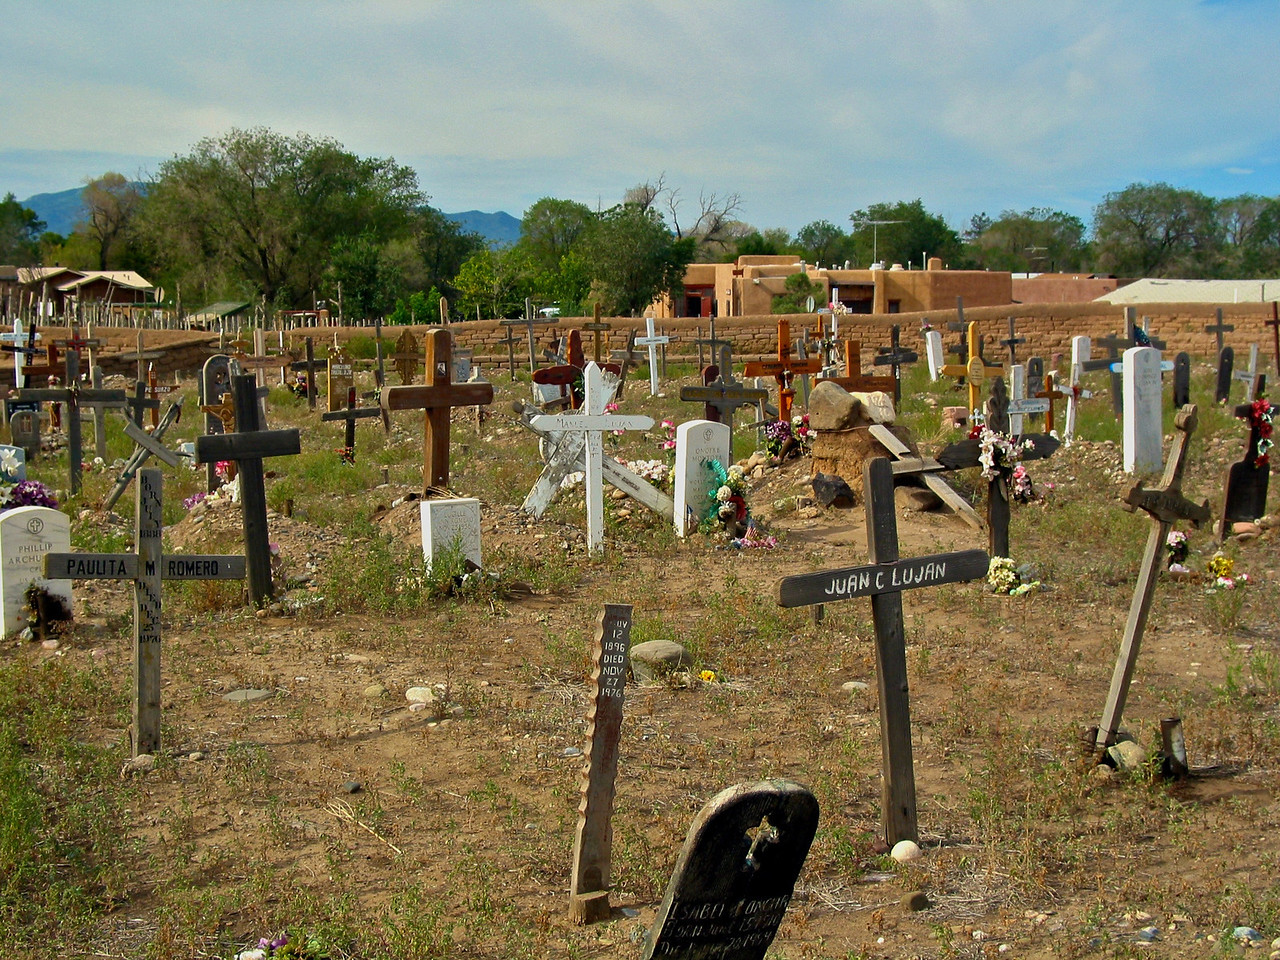 The current cemetery of Taos Pueblo is located on the ruins of the original St. Jerome Church, which was built in 1619 but destroyed during the Spanish Revolt of 1680